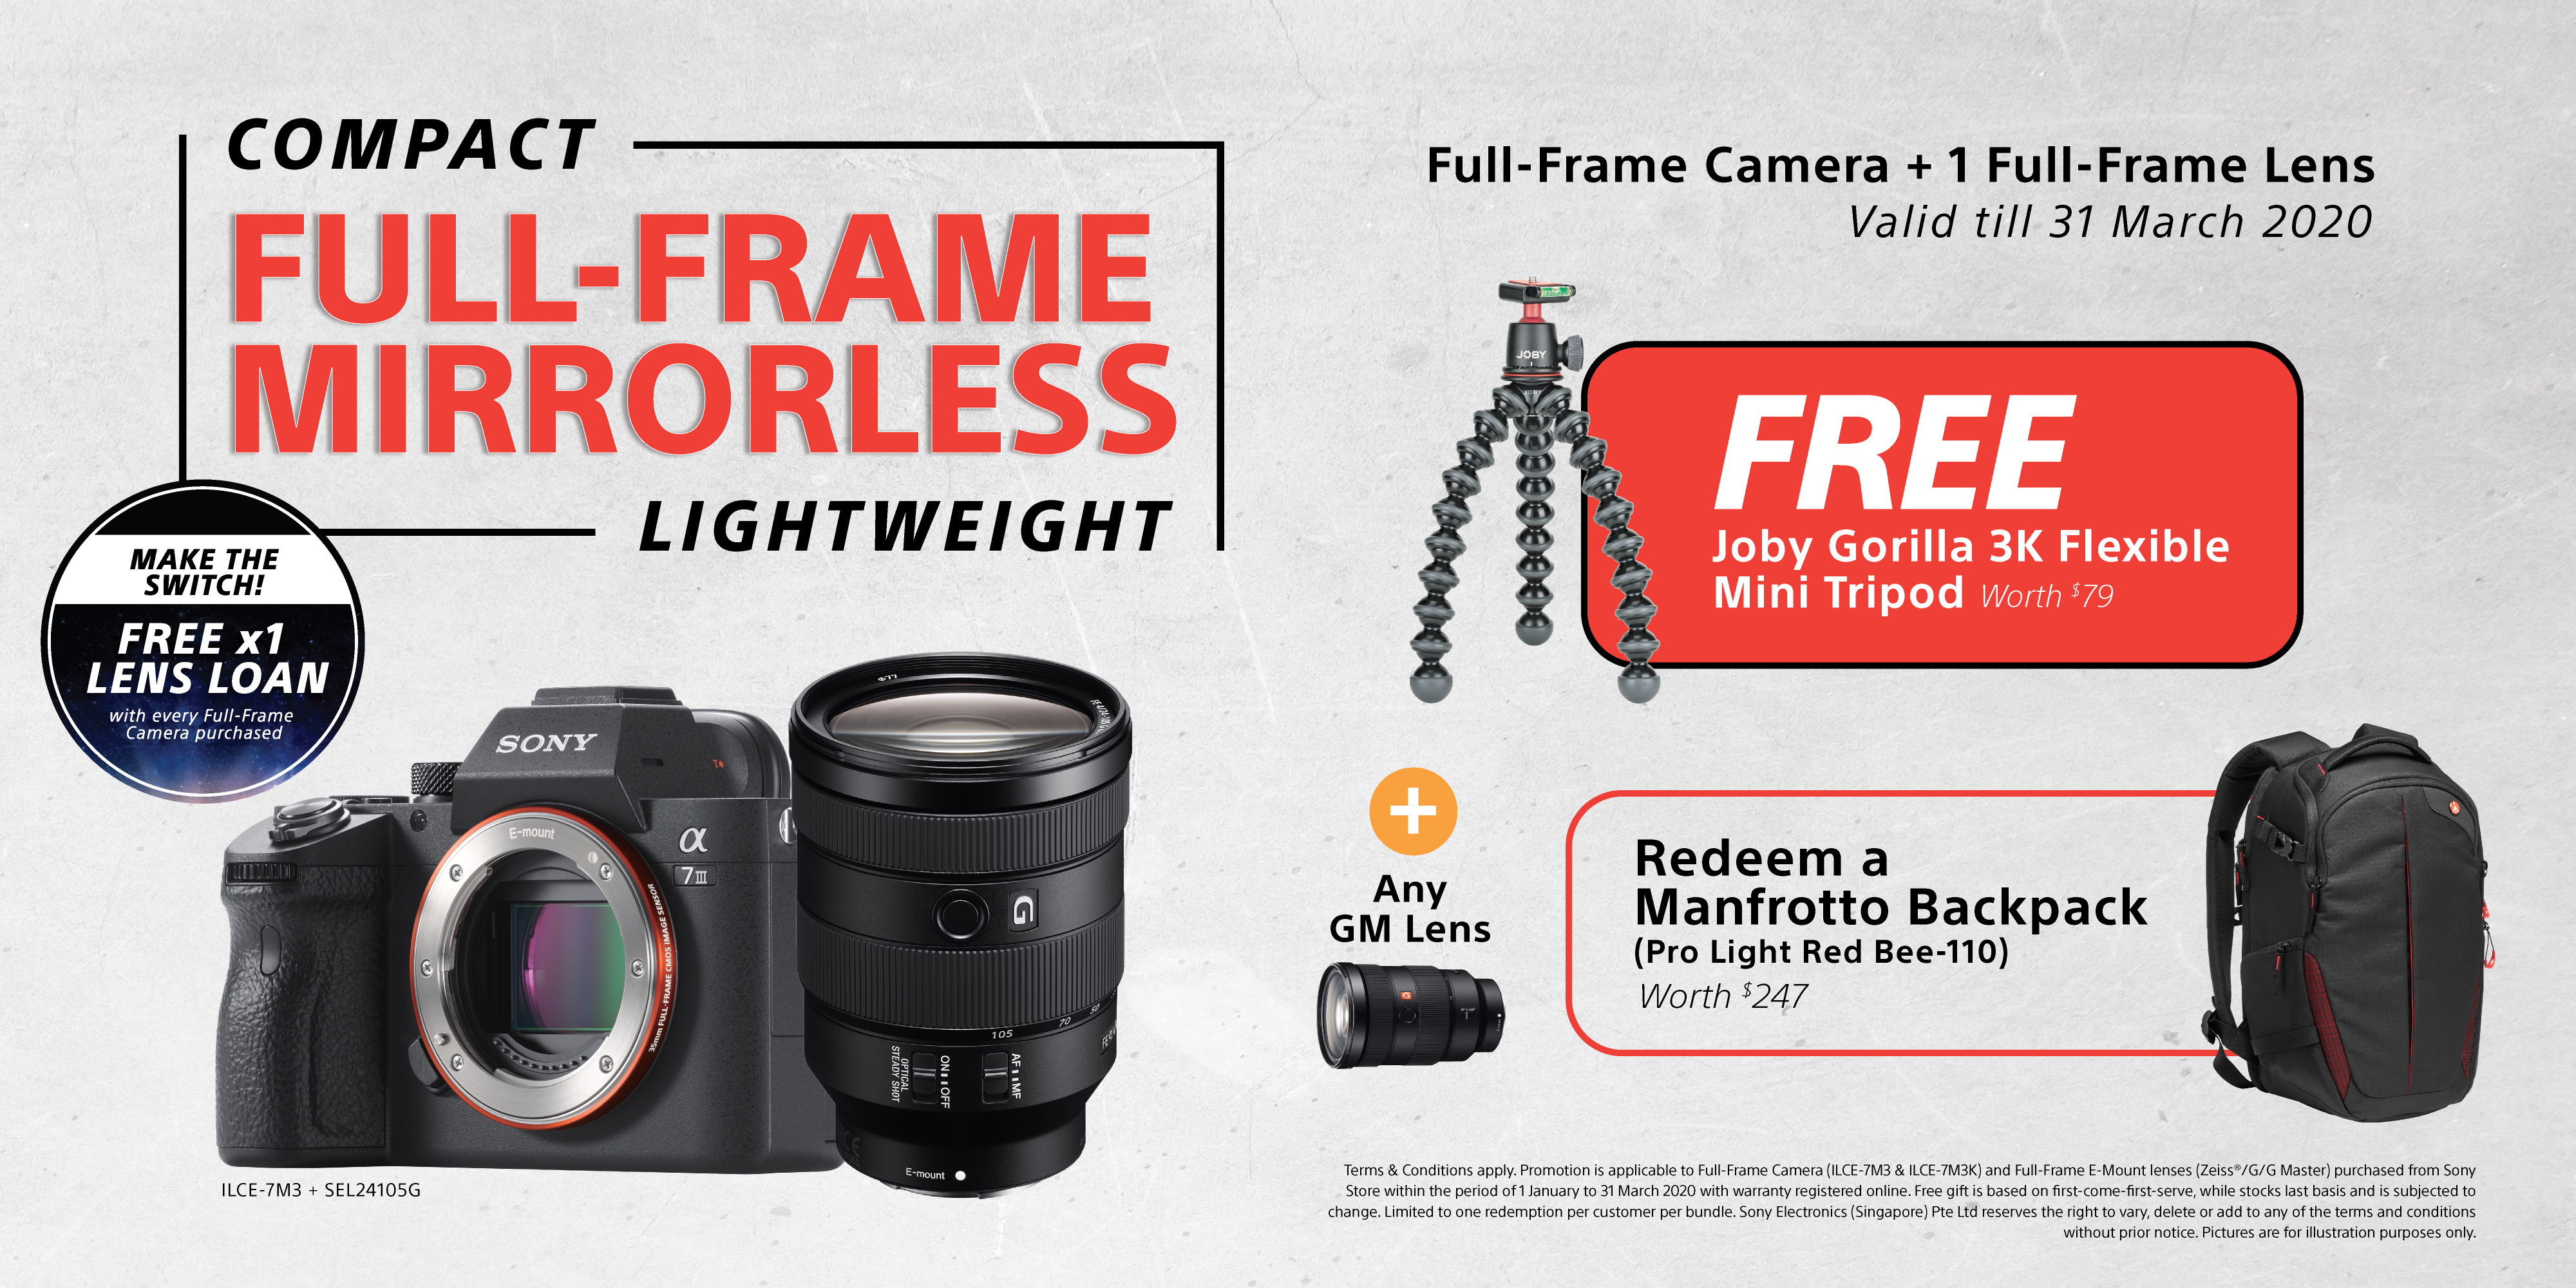 Purchase selected Full-Frame Camera + 1 Full-Frame Lens, and get a free Joby Gorilla 3K Flexible Mini Tripod. With the addition of any GM Lens, redeem a Manfrotto Backpack. With every Full-Frame Camera purchased, get free 1x lens loan. Promotion valid till 31st March 2020.